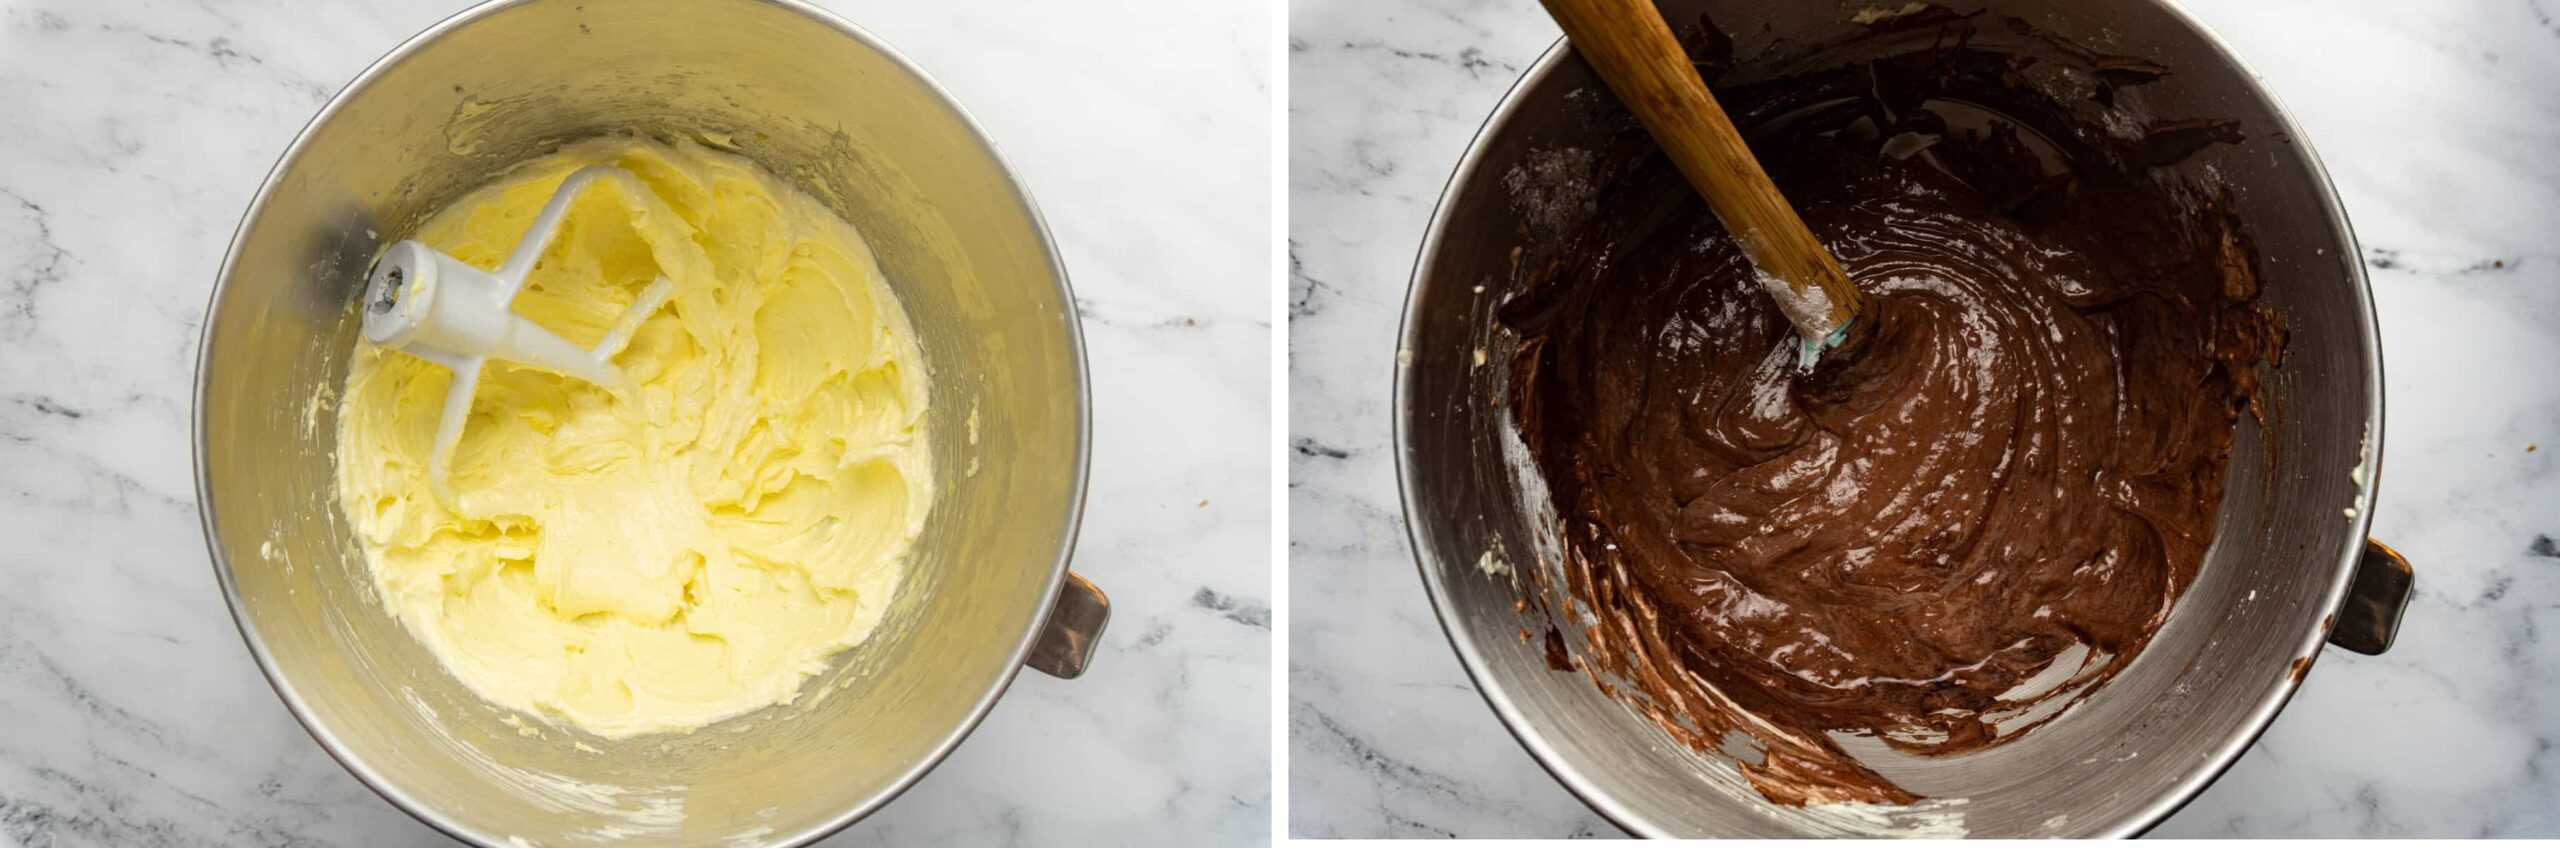 German Chocolate Cake Recipe Batter fluffy with eggs whipped in vs batter with chocolate and flour folded in